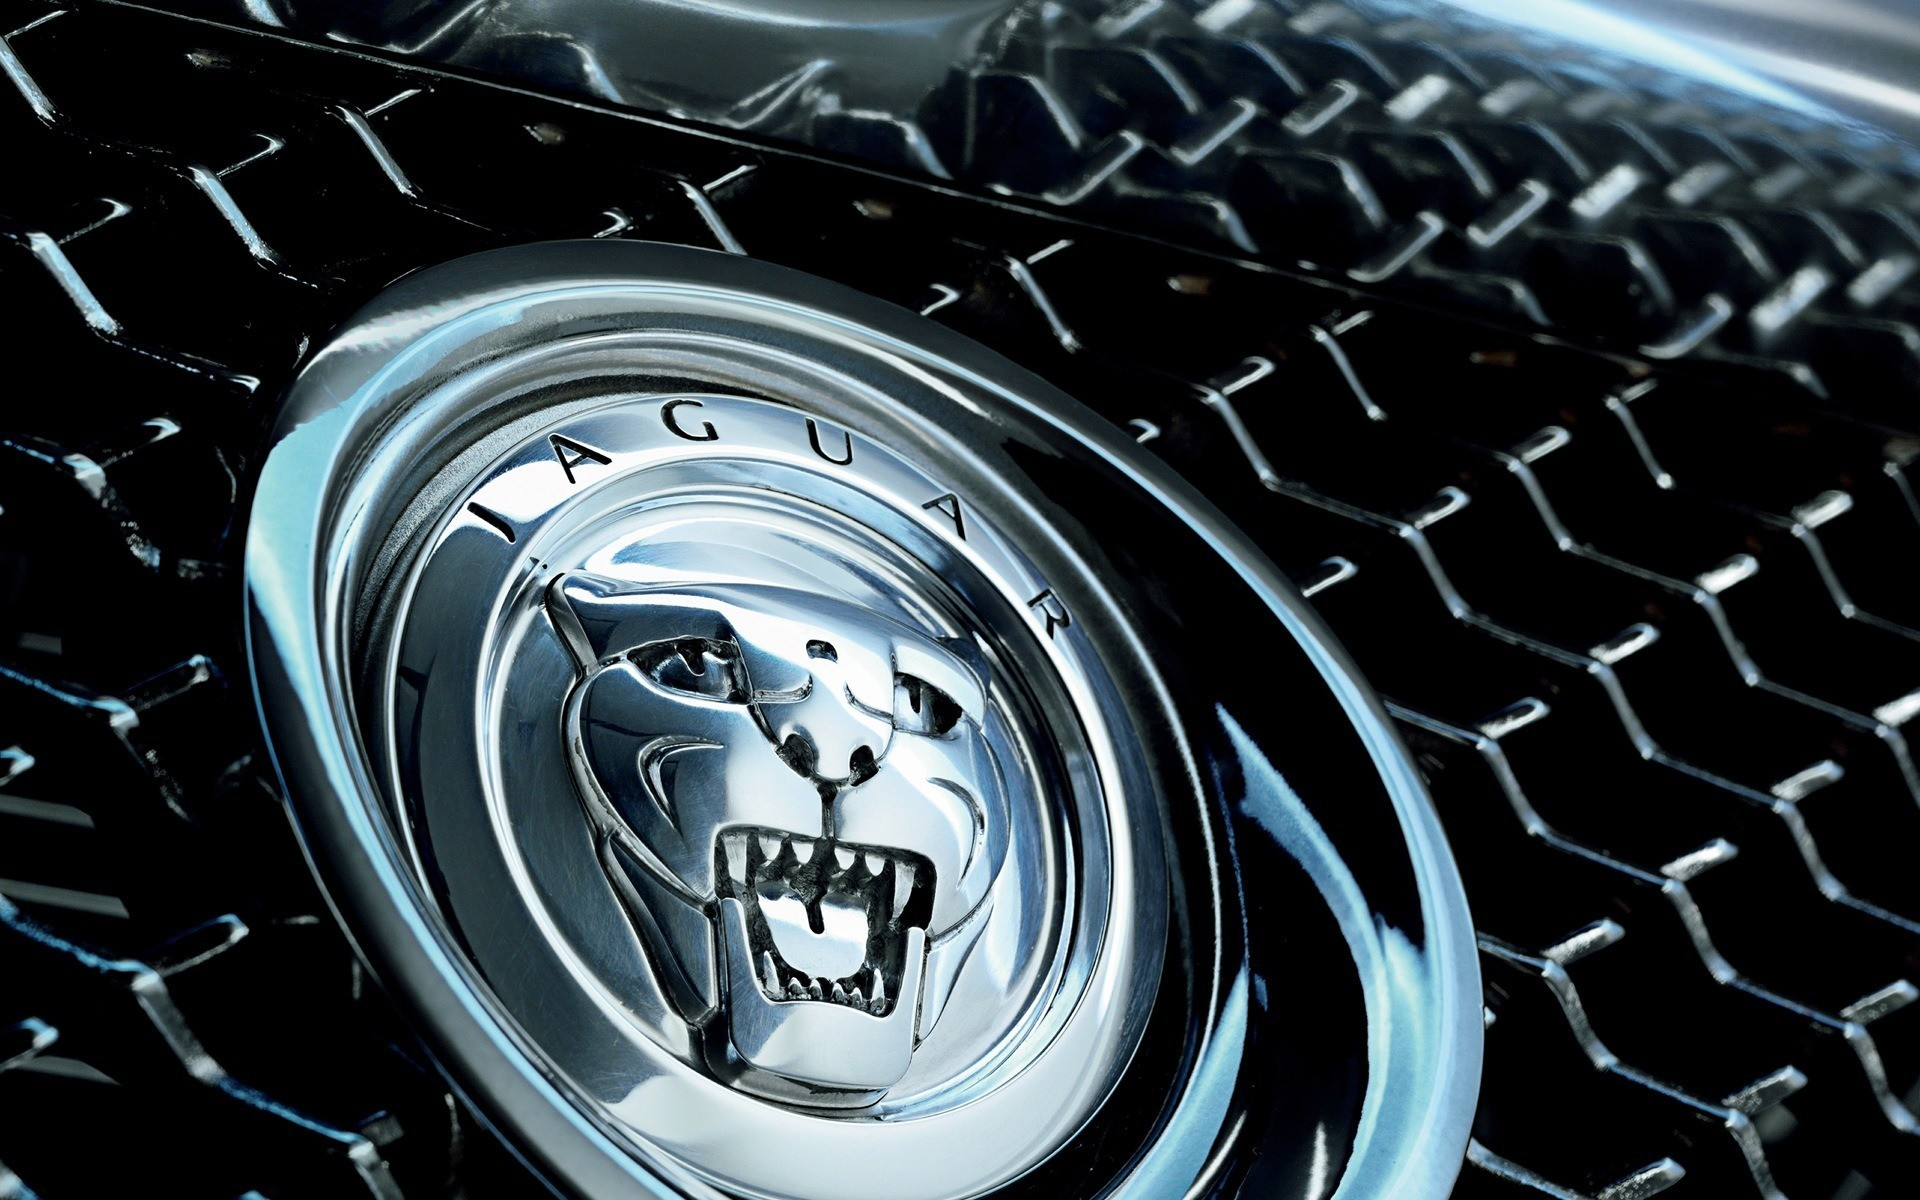 Car logos wallpapers 63 images 1080x1920 download car logo iphone 7 wallpaper 171 wallpaper from the 1080x1920 resolutions this wallpaper comes from cars directory and we focuse it on buycottarizona